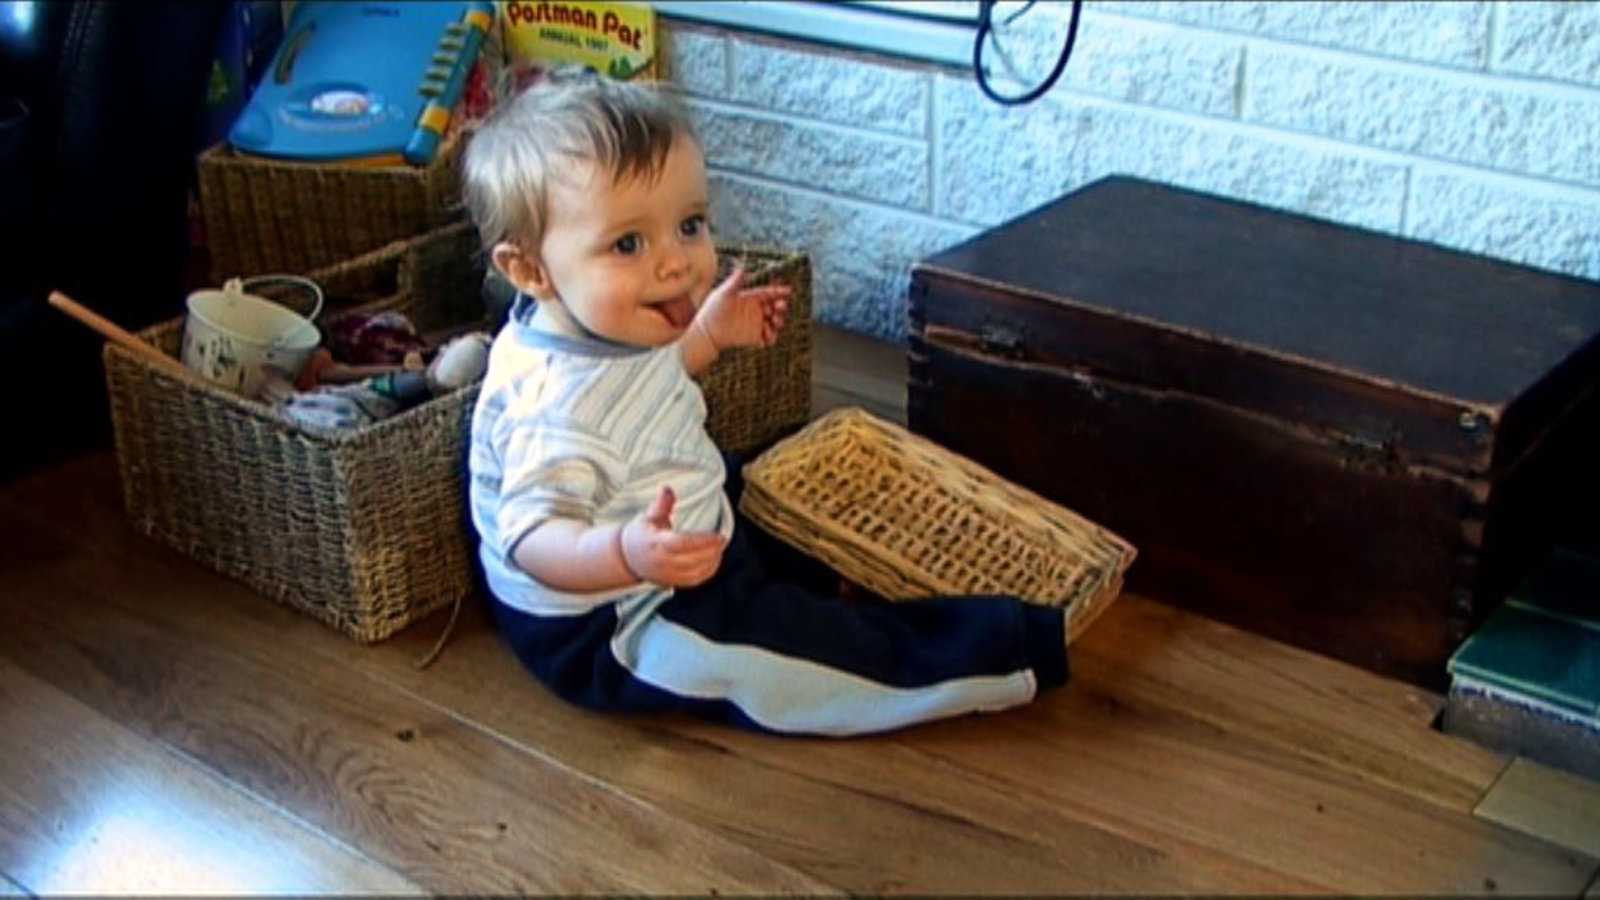 Attachment and Holistic Development - The first year